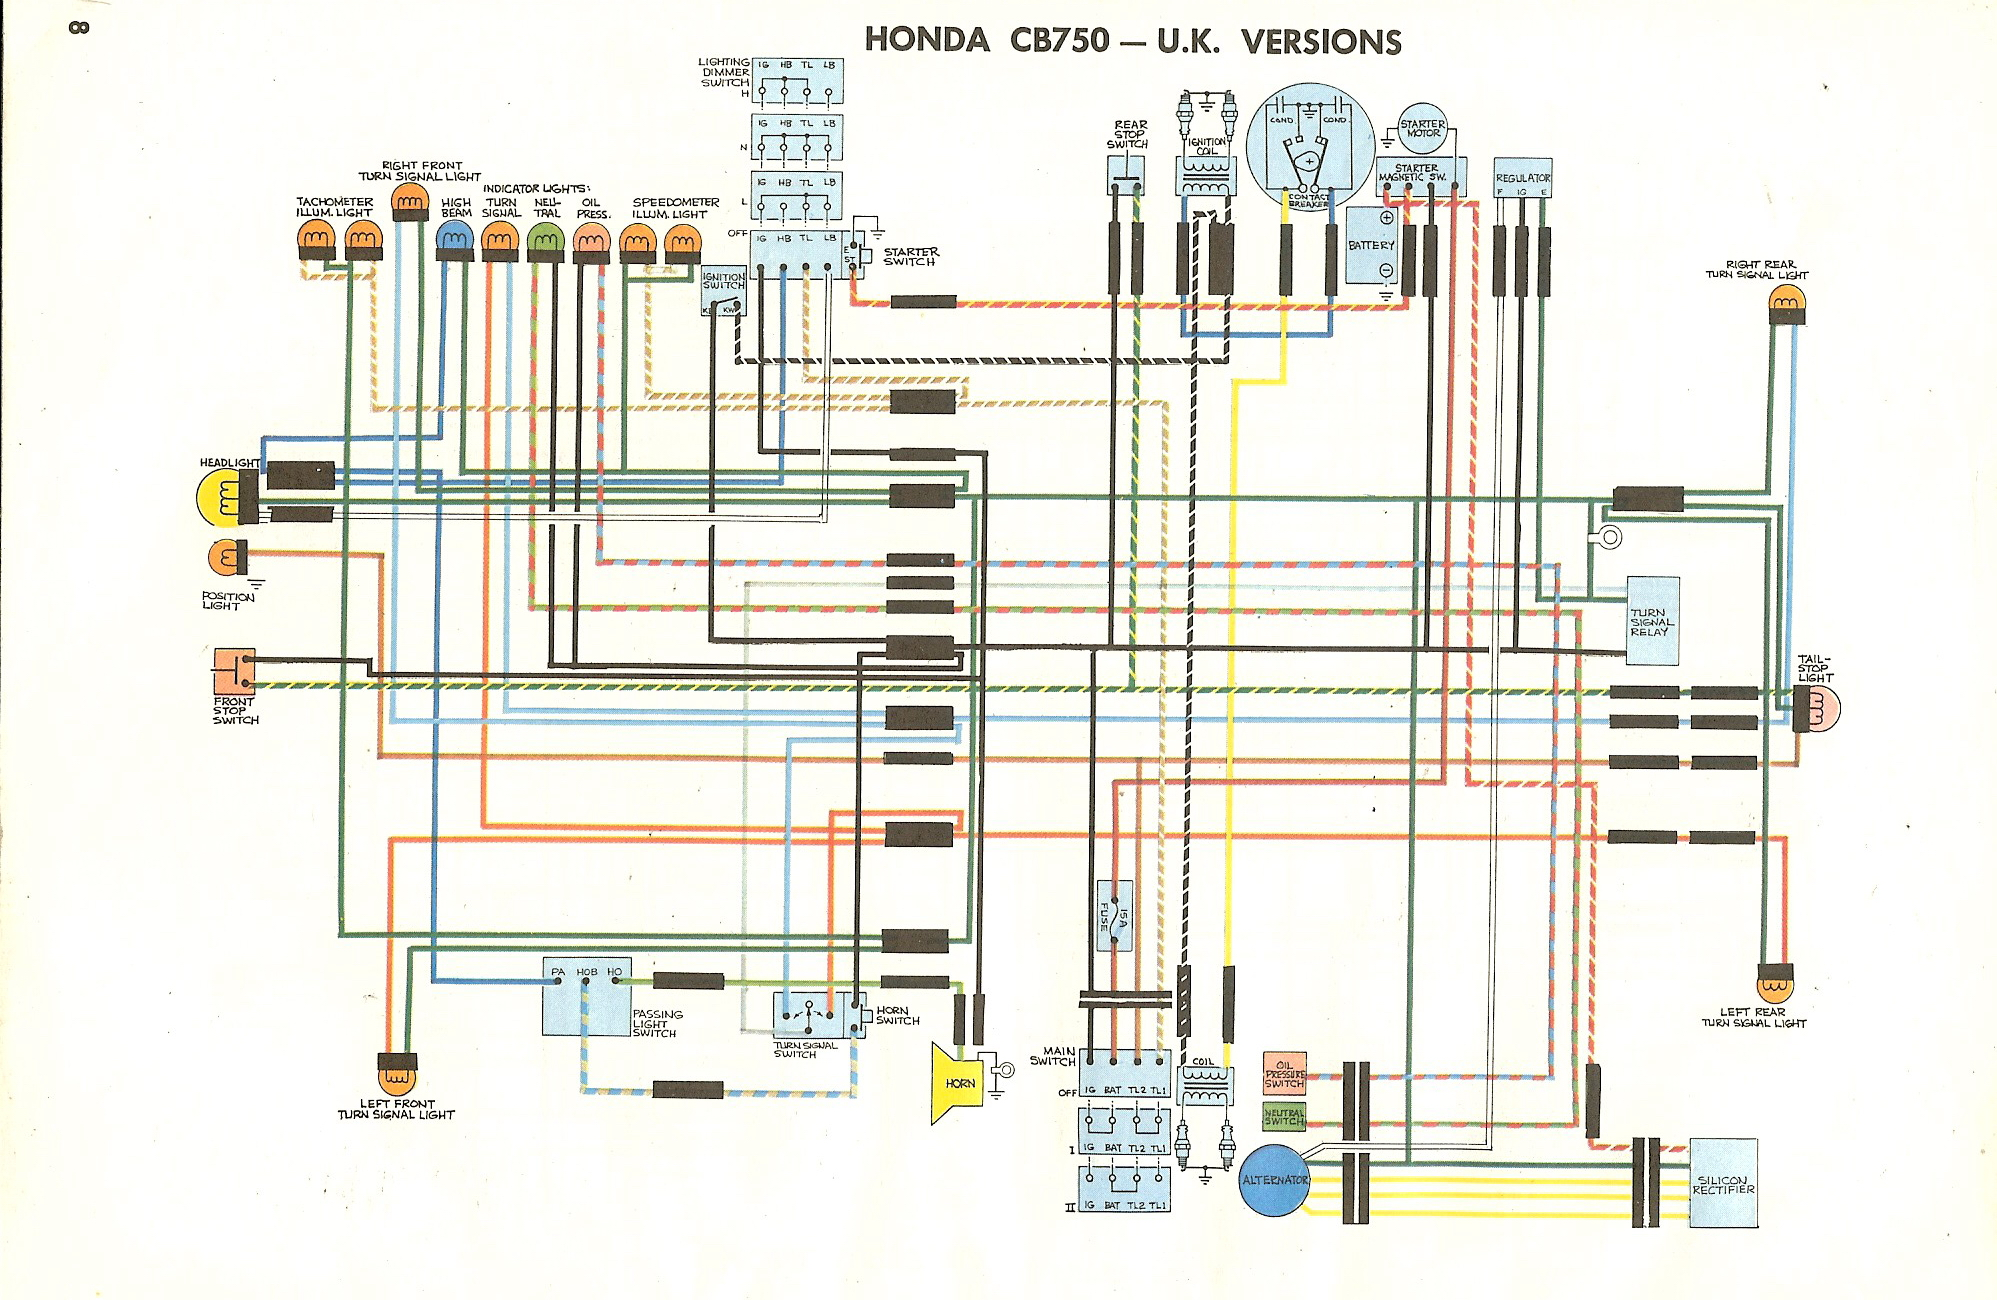 WD750UK 1978 honda cb750 wiring diagram honda cb 700 ignition wire diagram 1976 cb550f wiring diagram at fashall.co